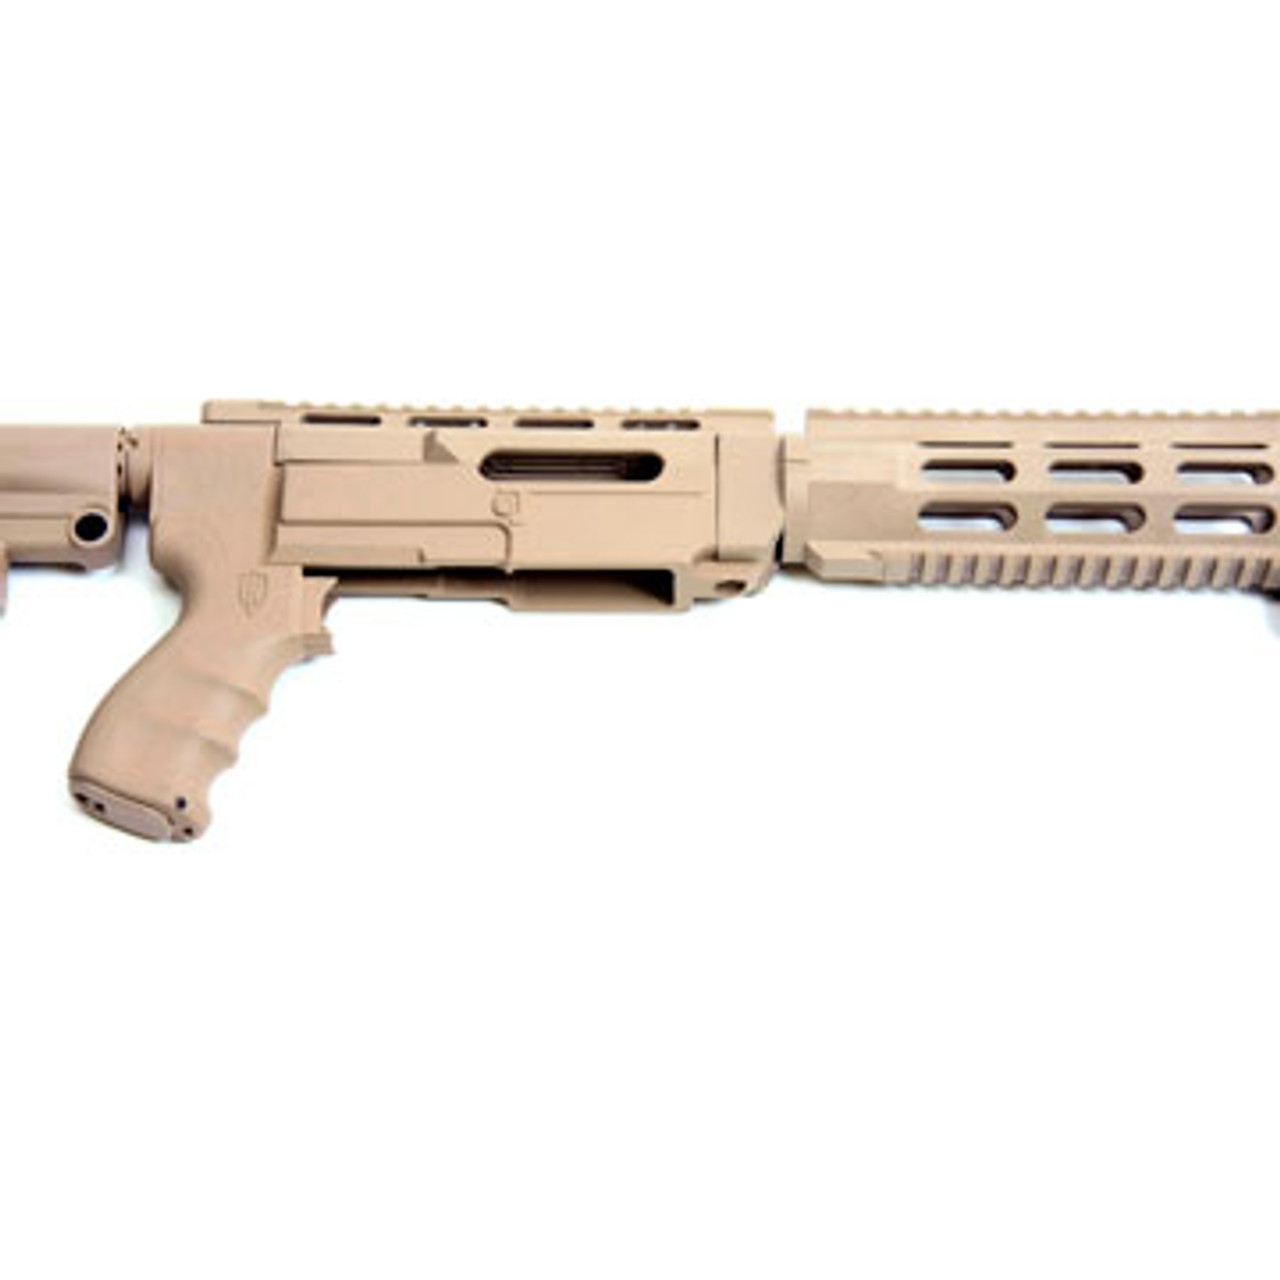 Archangel® 556 AR-15® Style Conversion Stock for Ruger® 10/22® No Bayonet - Desert Tan Polymer